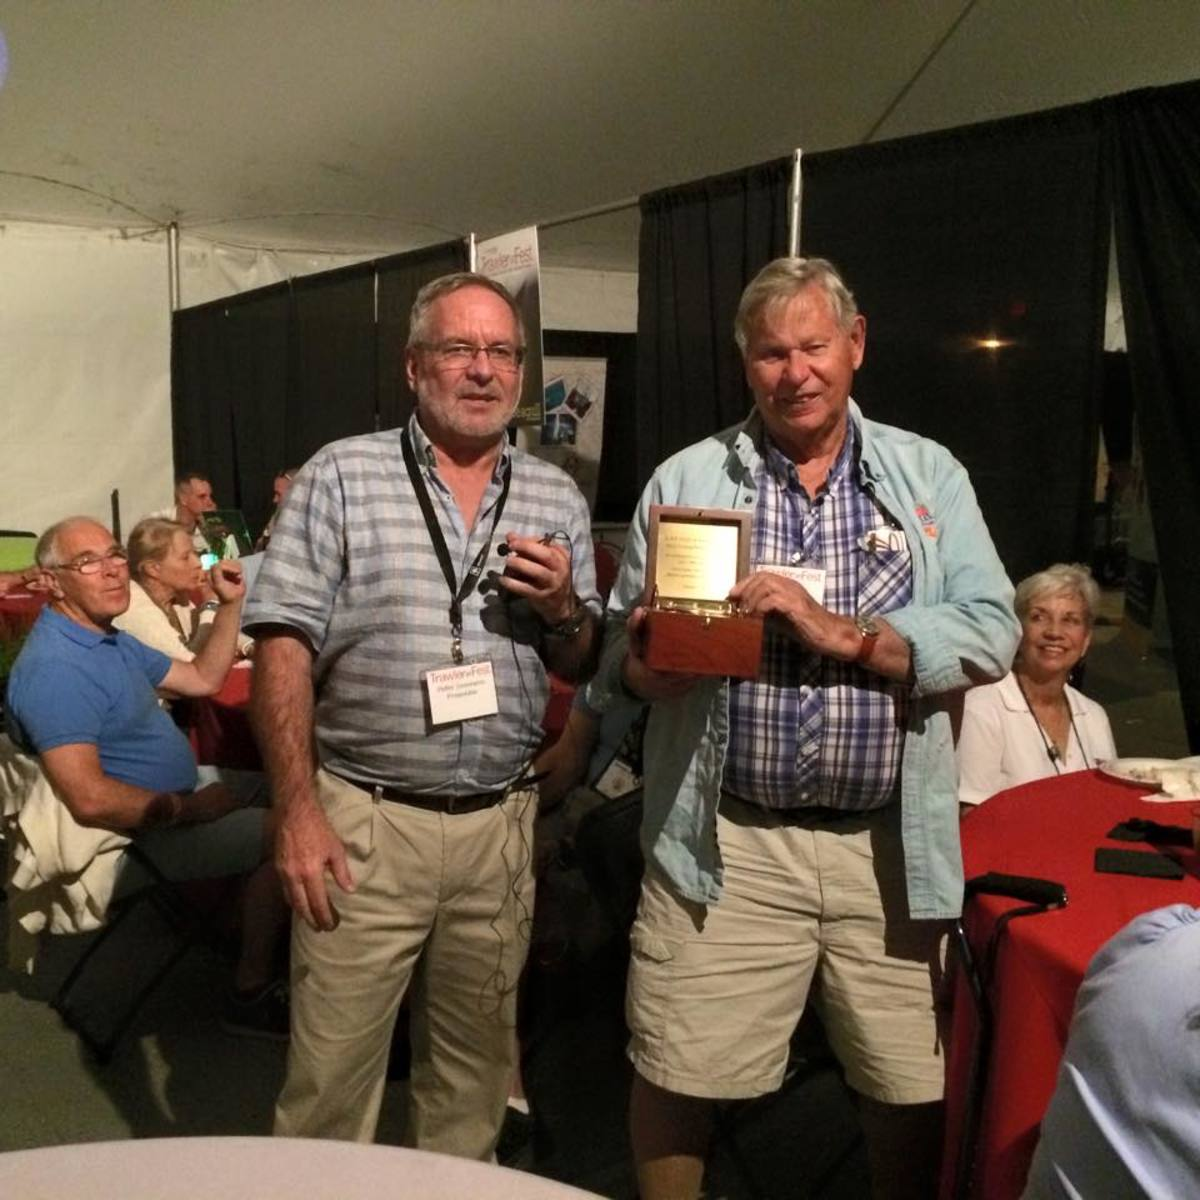 Bob Smith (right) was recently saluted at TrawlerFest-Riviera Beach for attending every TrawlerFest to date.